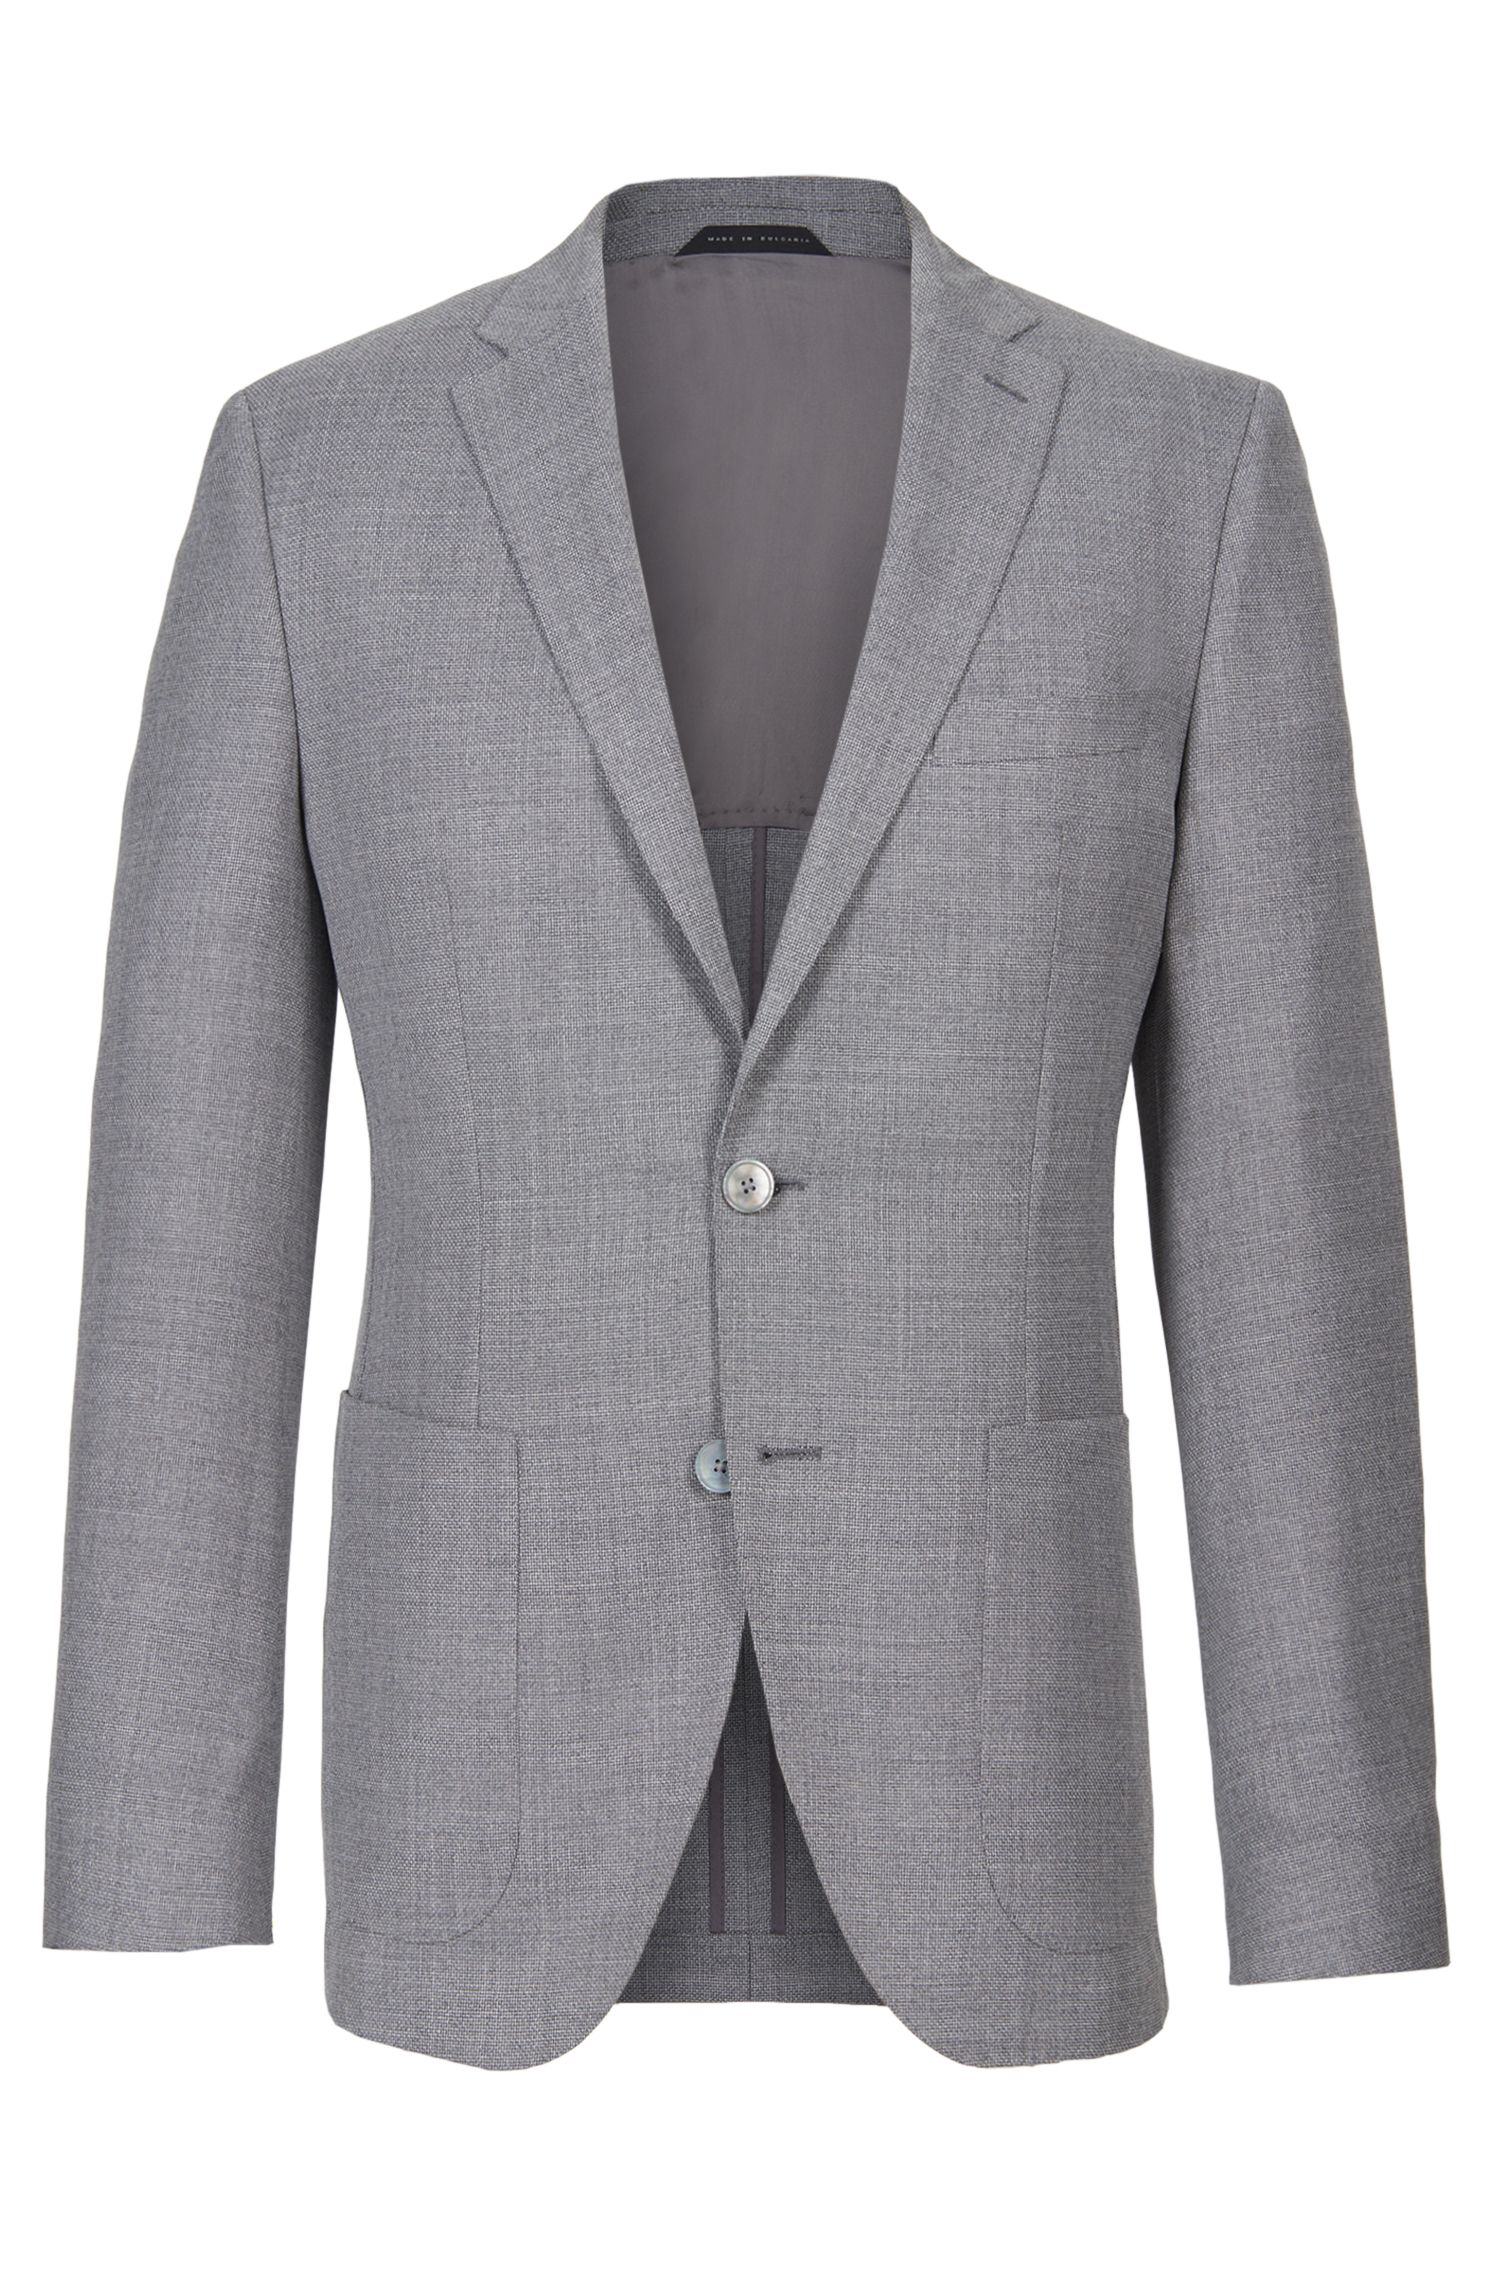 'Janson' | Regular Fit, Textured Super 110 Virgin Wool Sport Coat